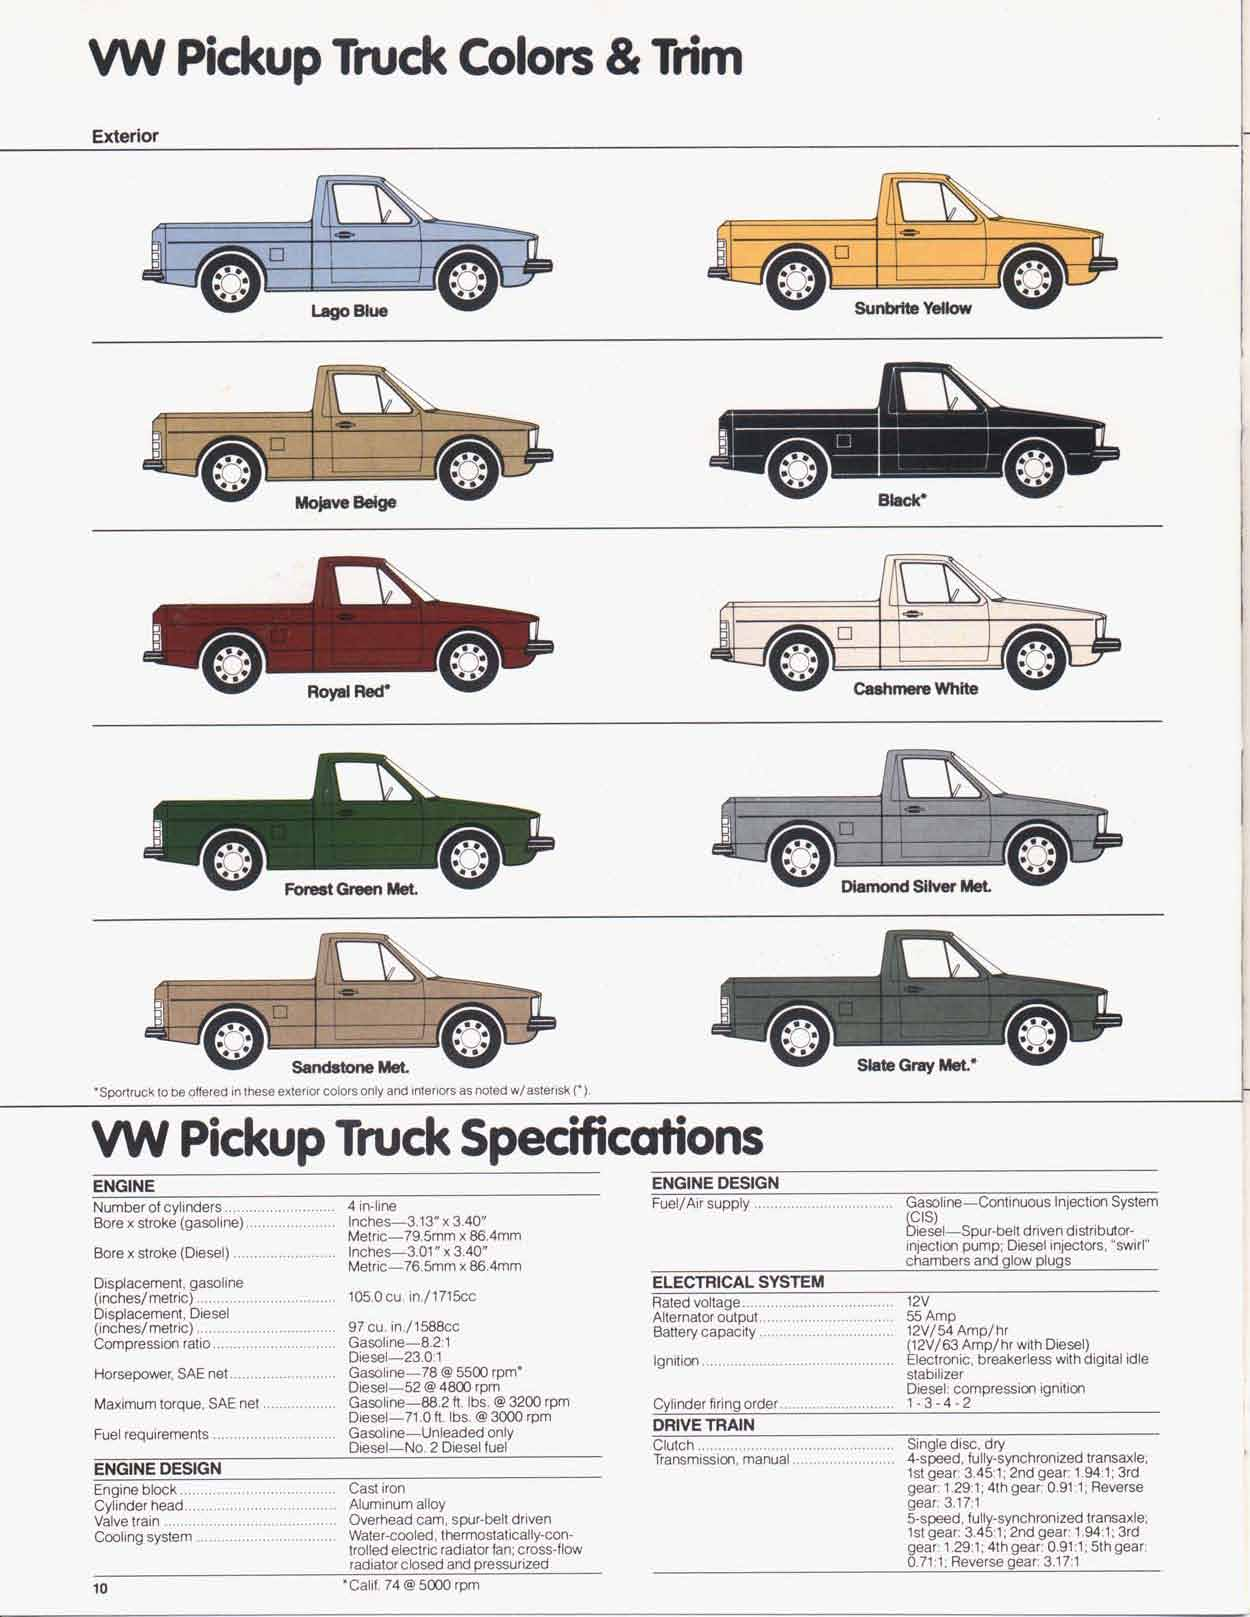 VW Pickup Truck Specs Sheet